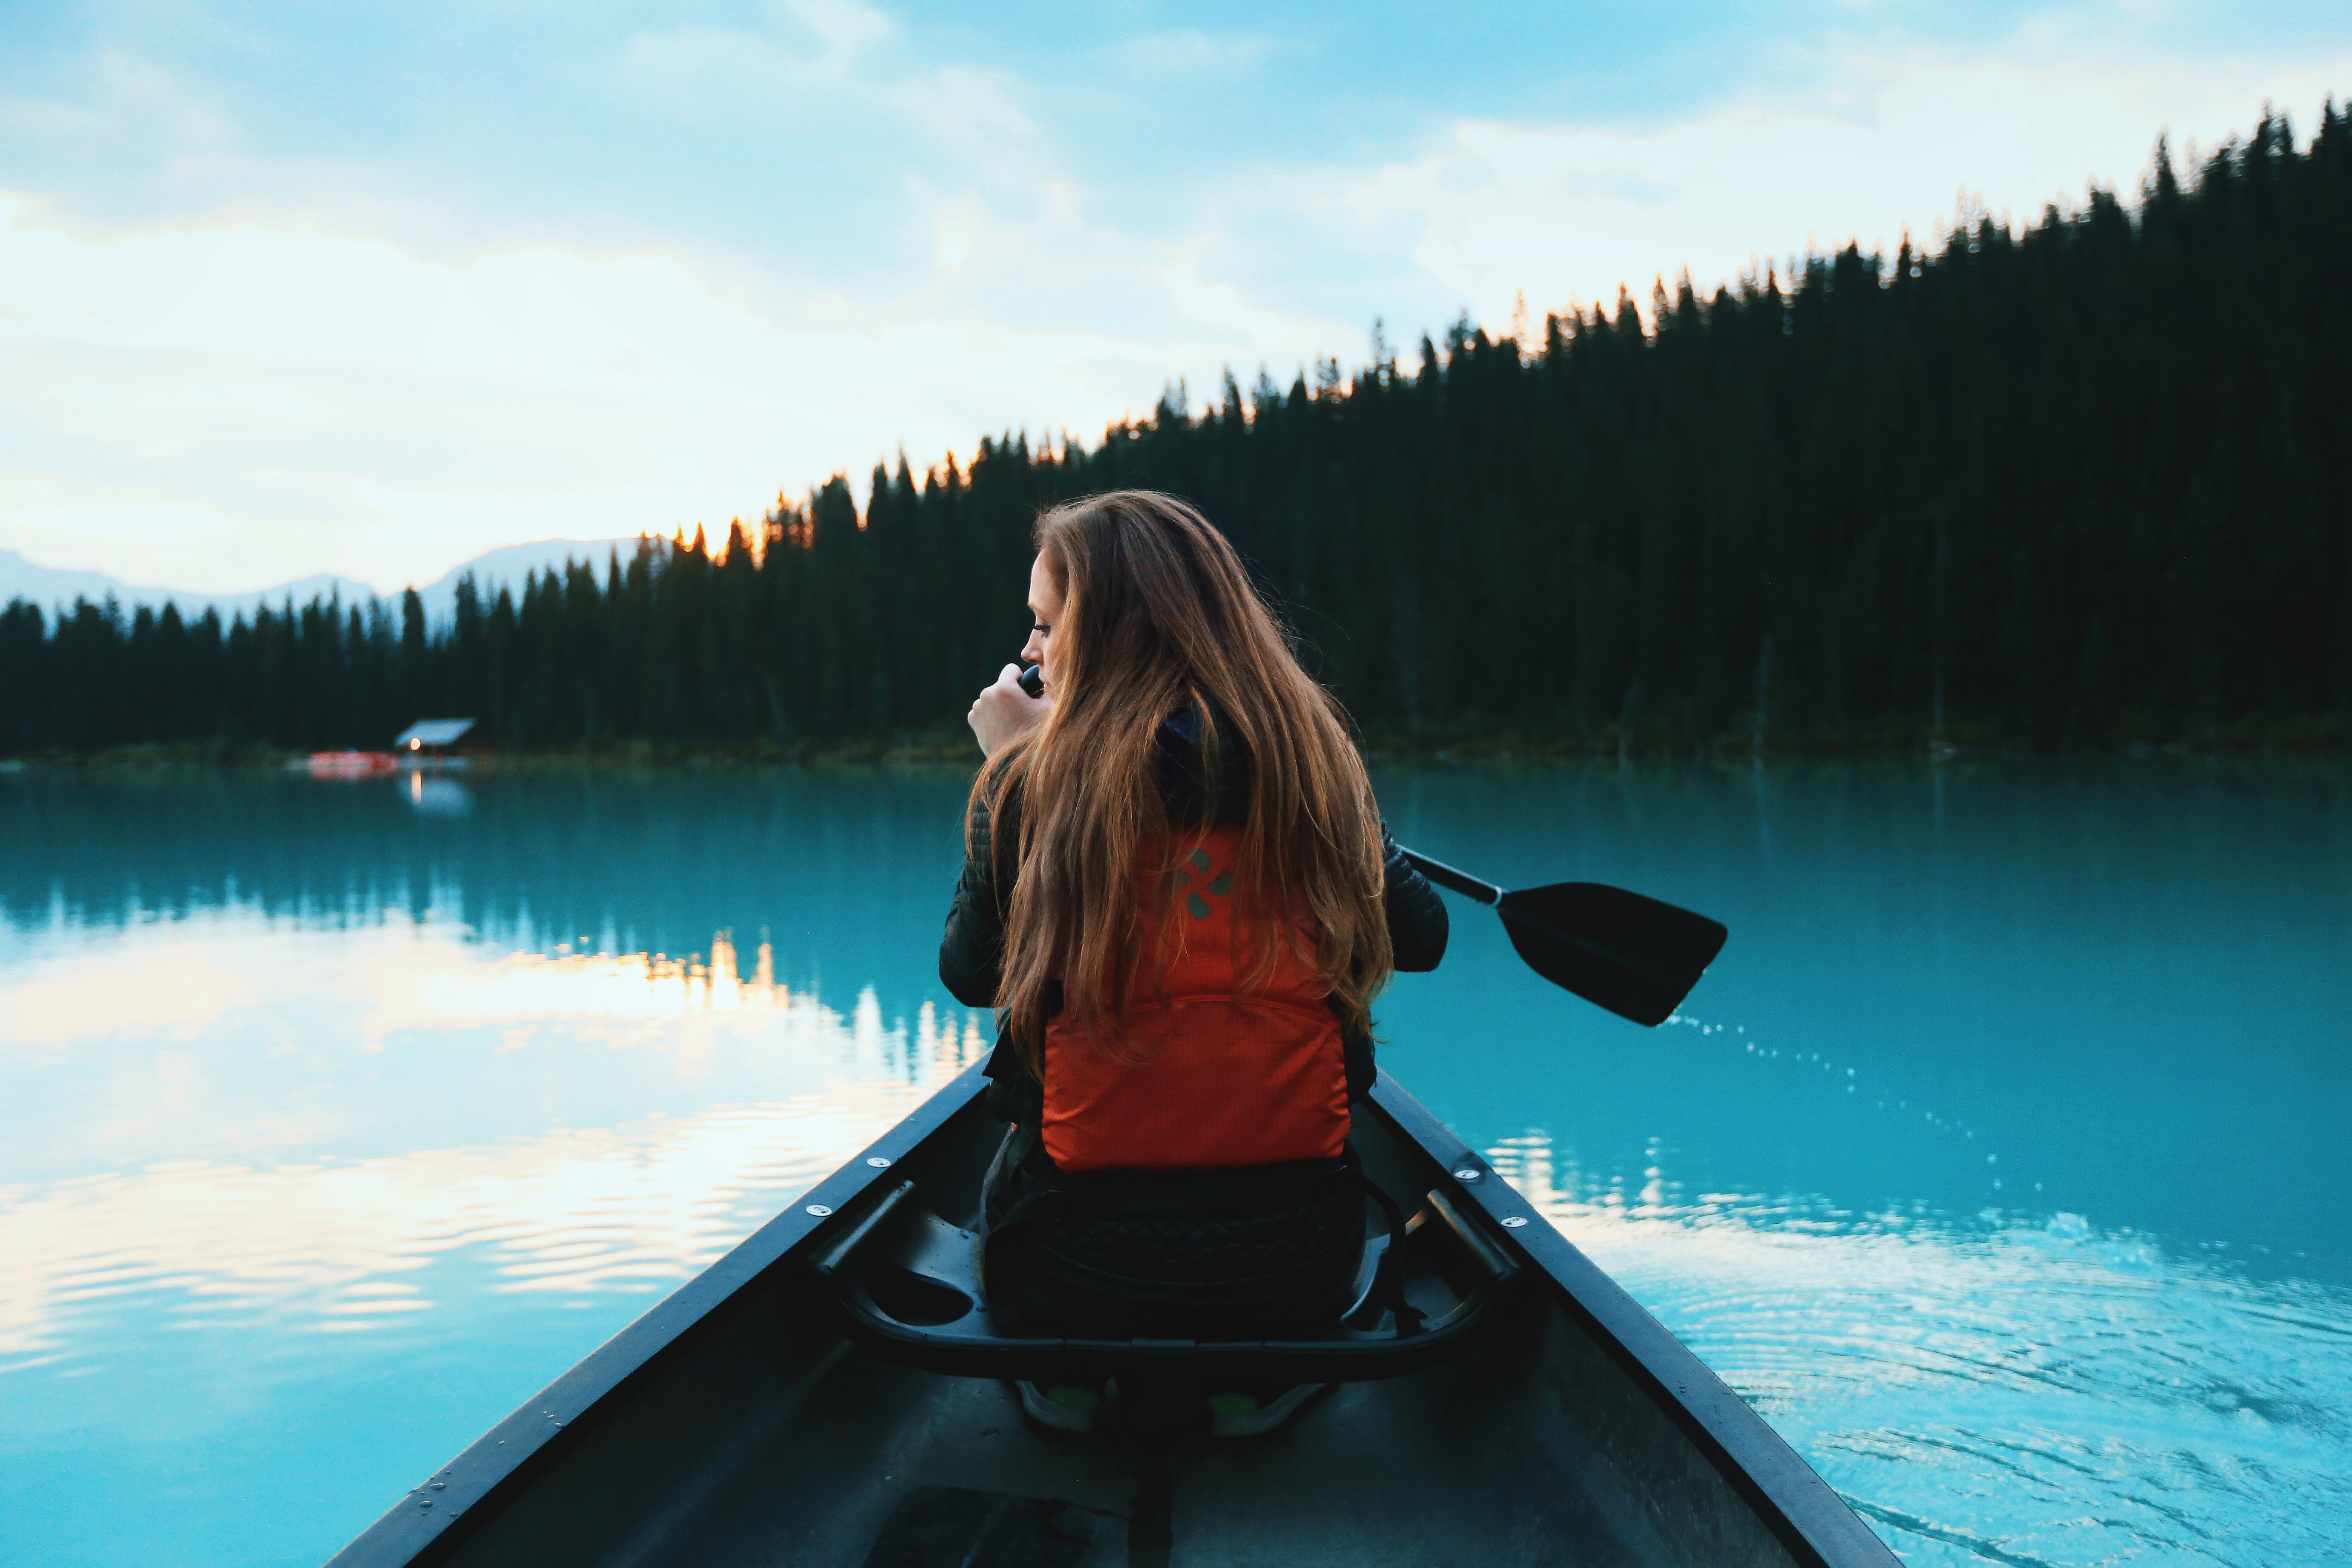 A woman with a backpack in a boat on a blue lake